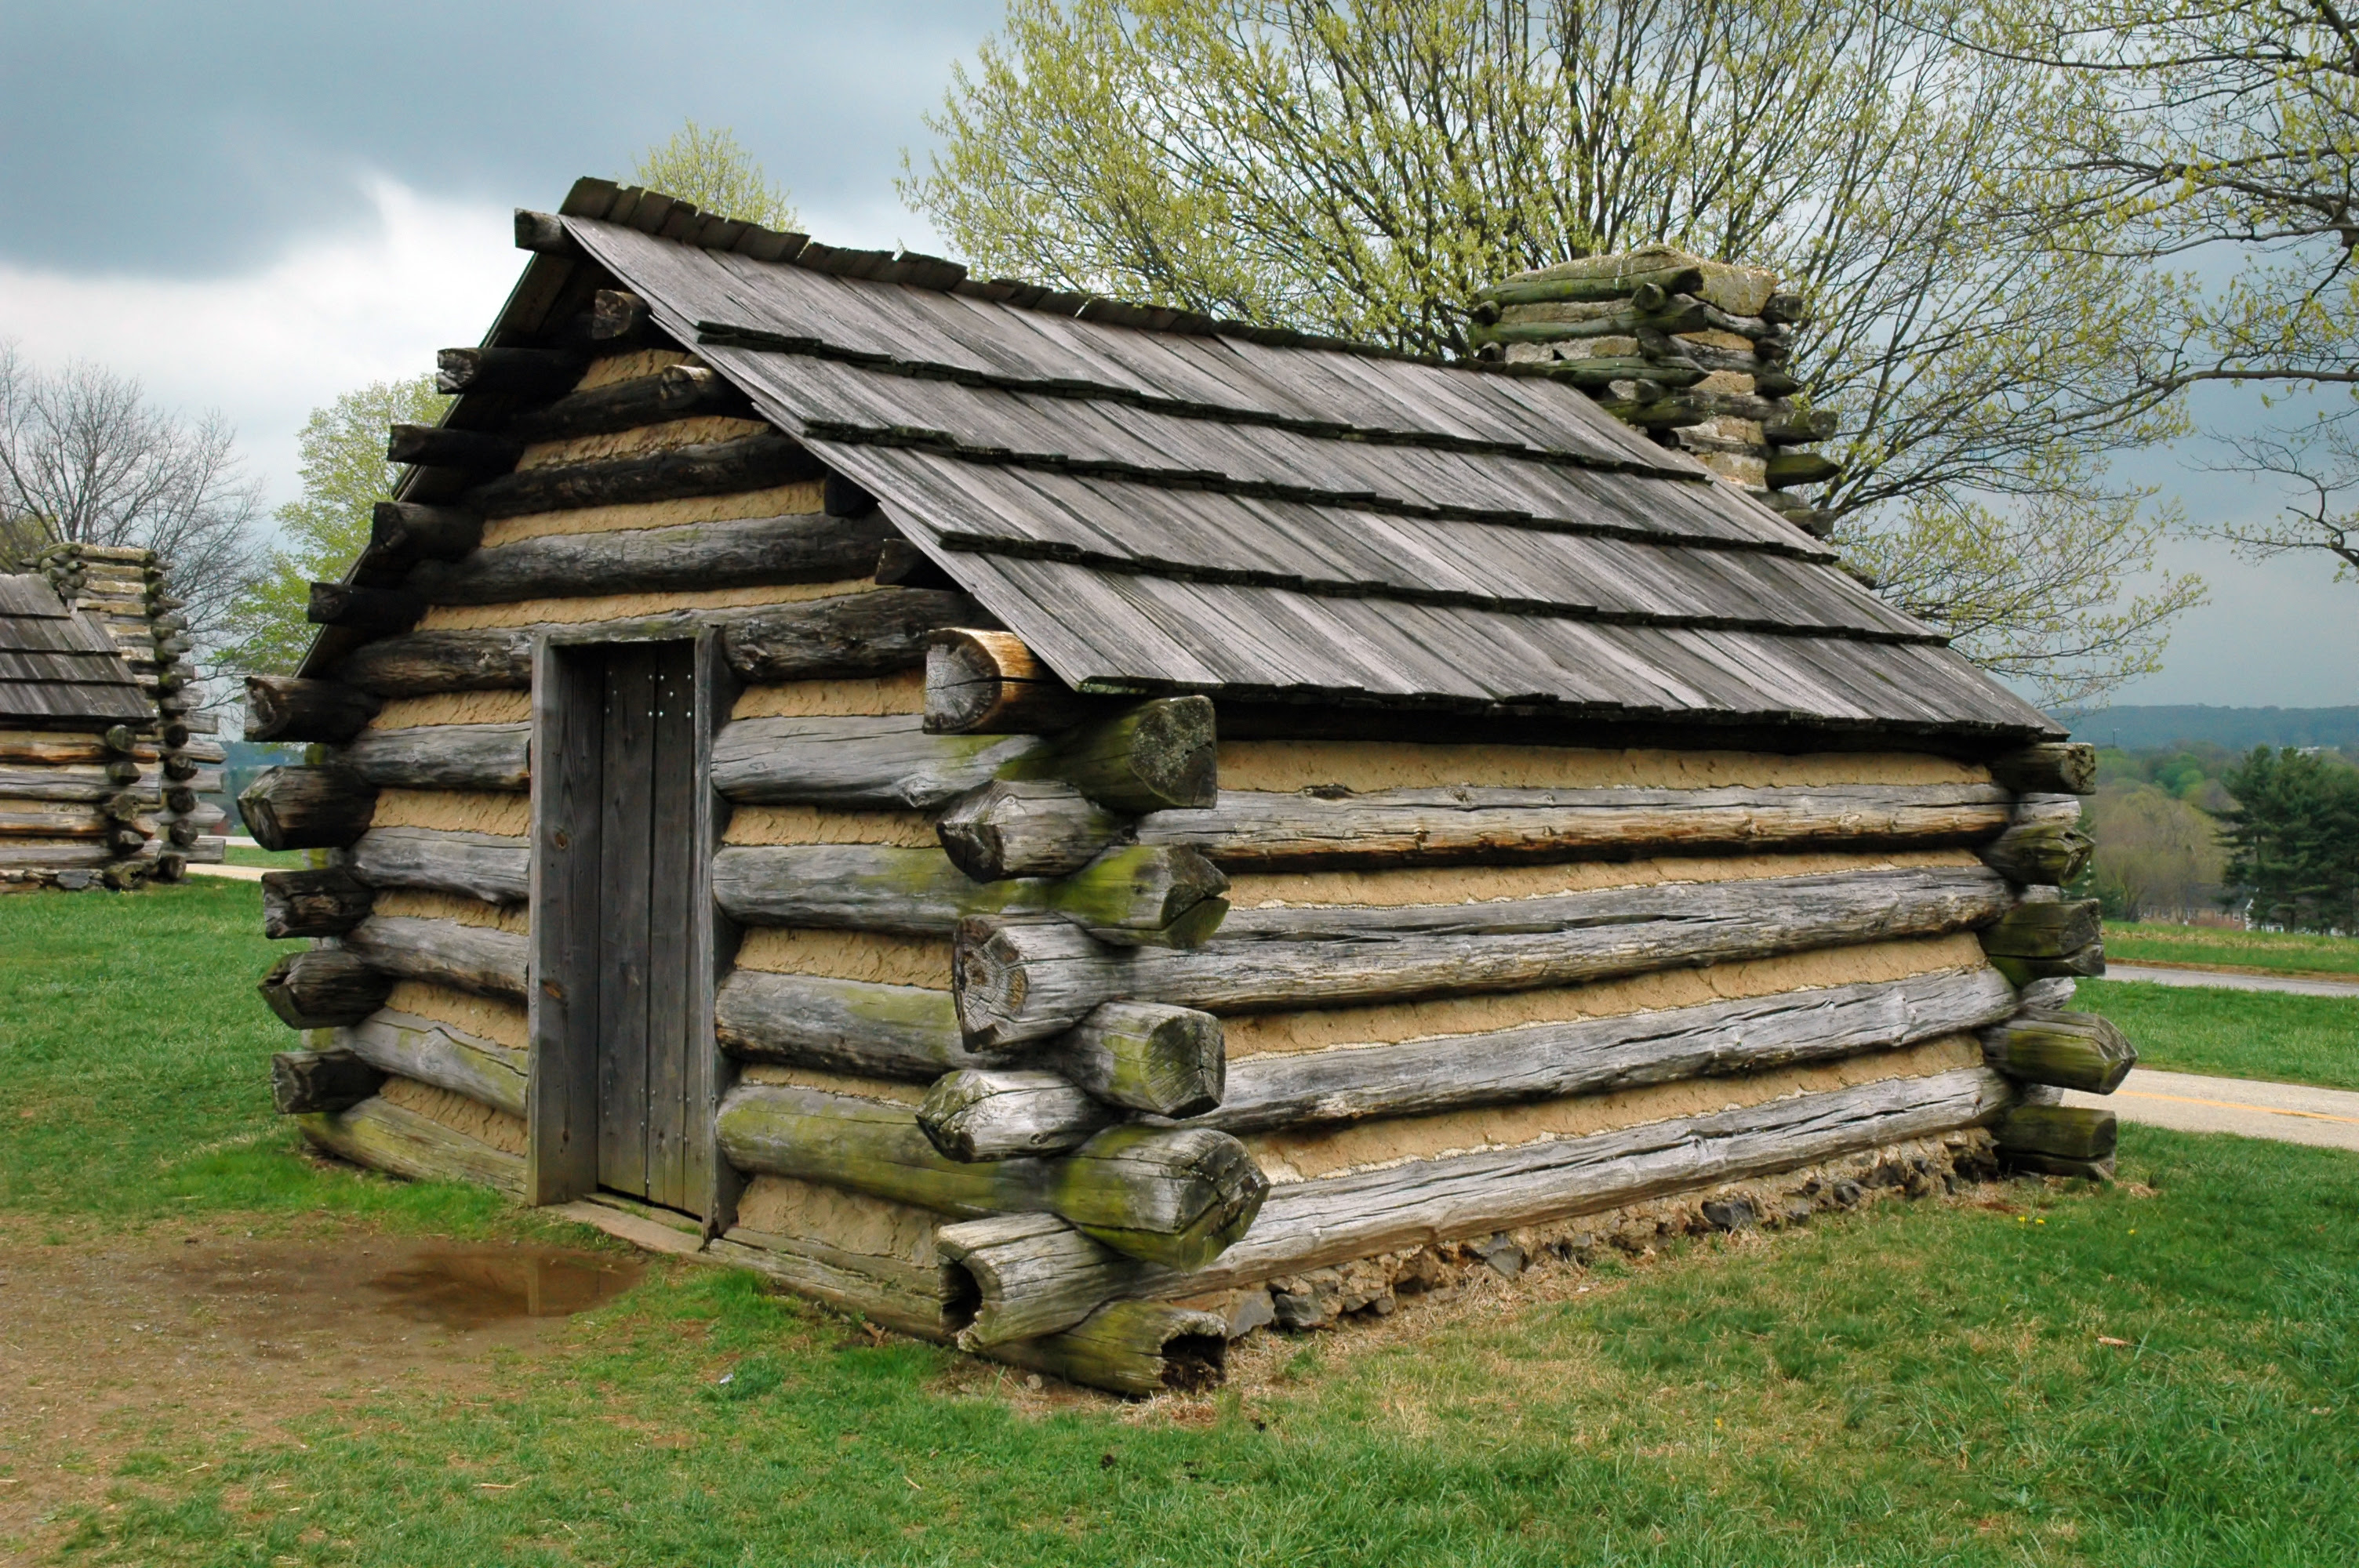 File:Valley Forge cabin.jpg - Wikipedia, the free encyclopedia